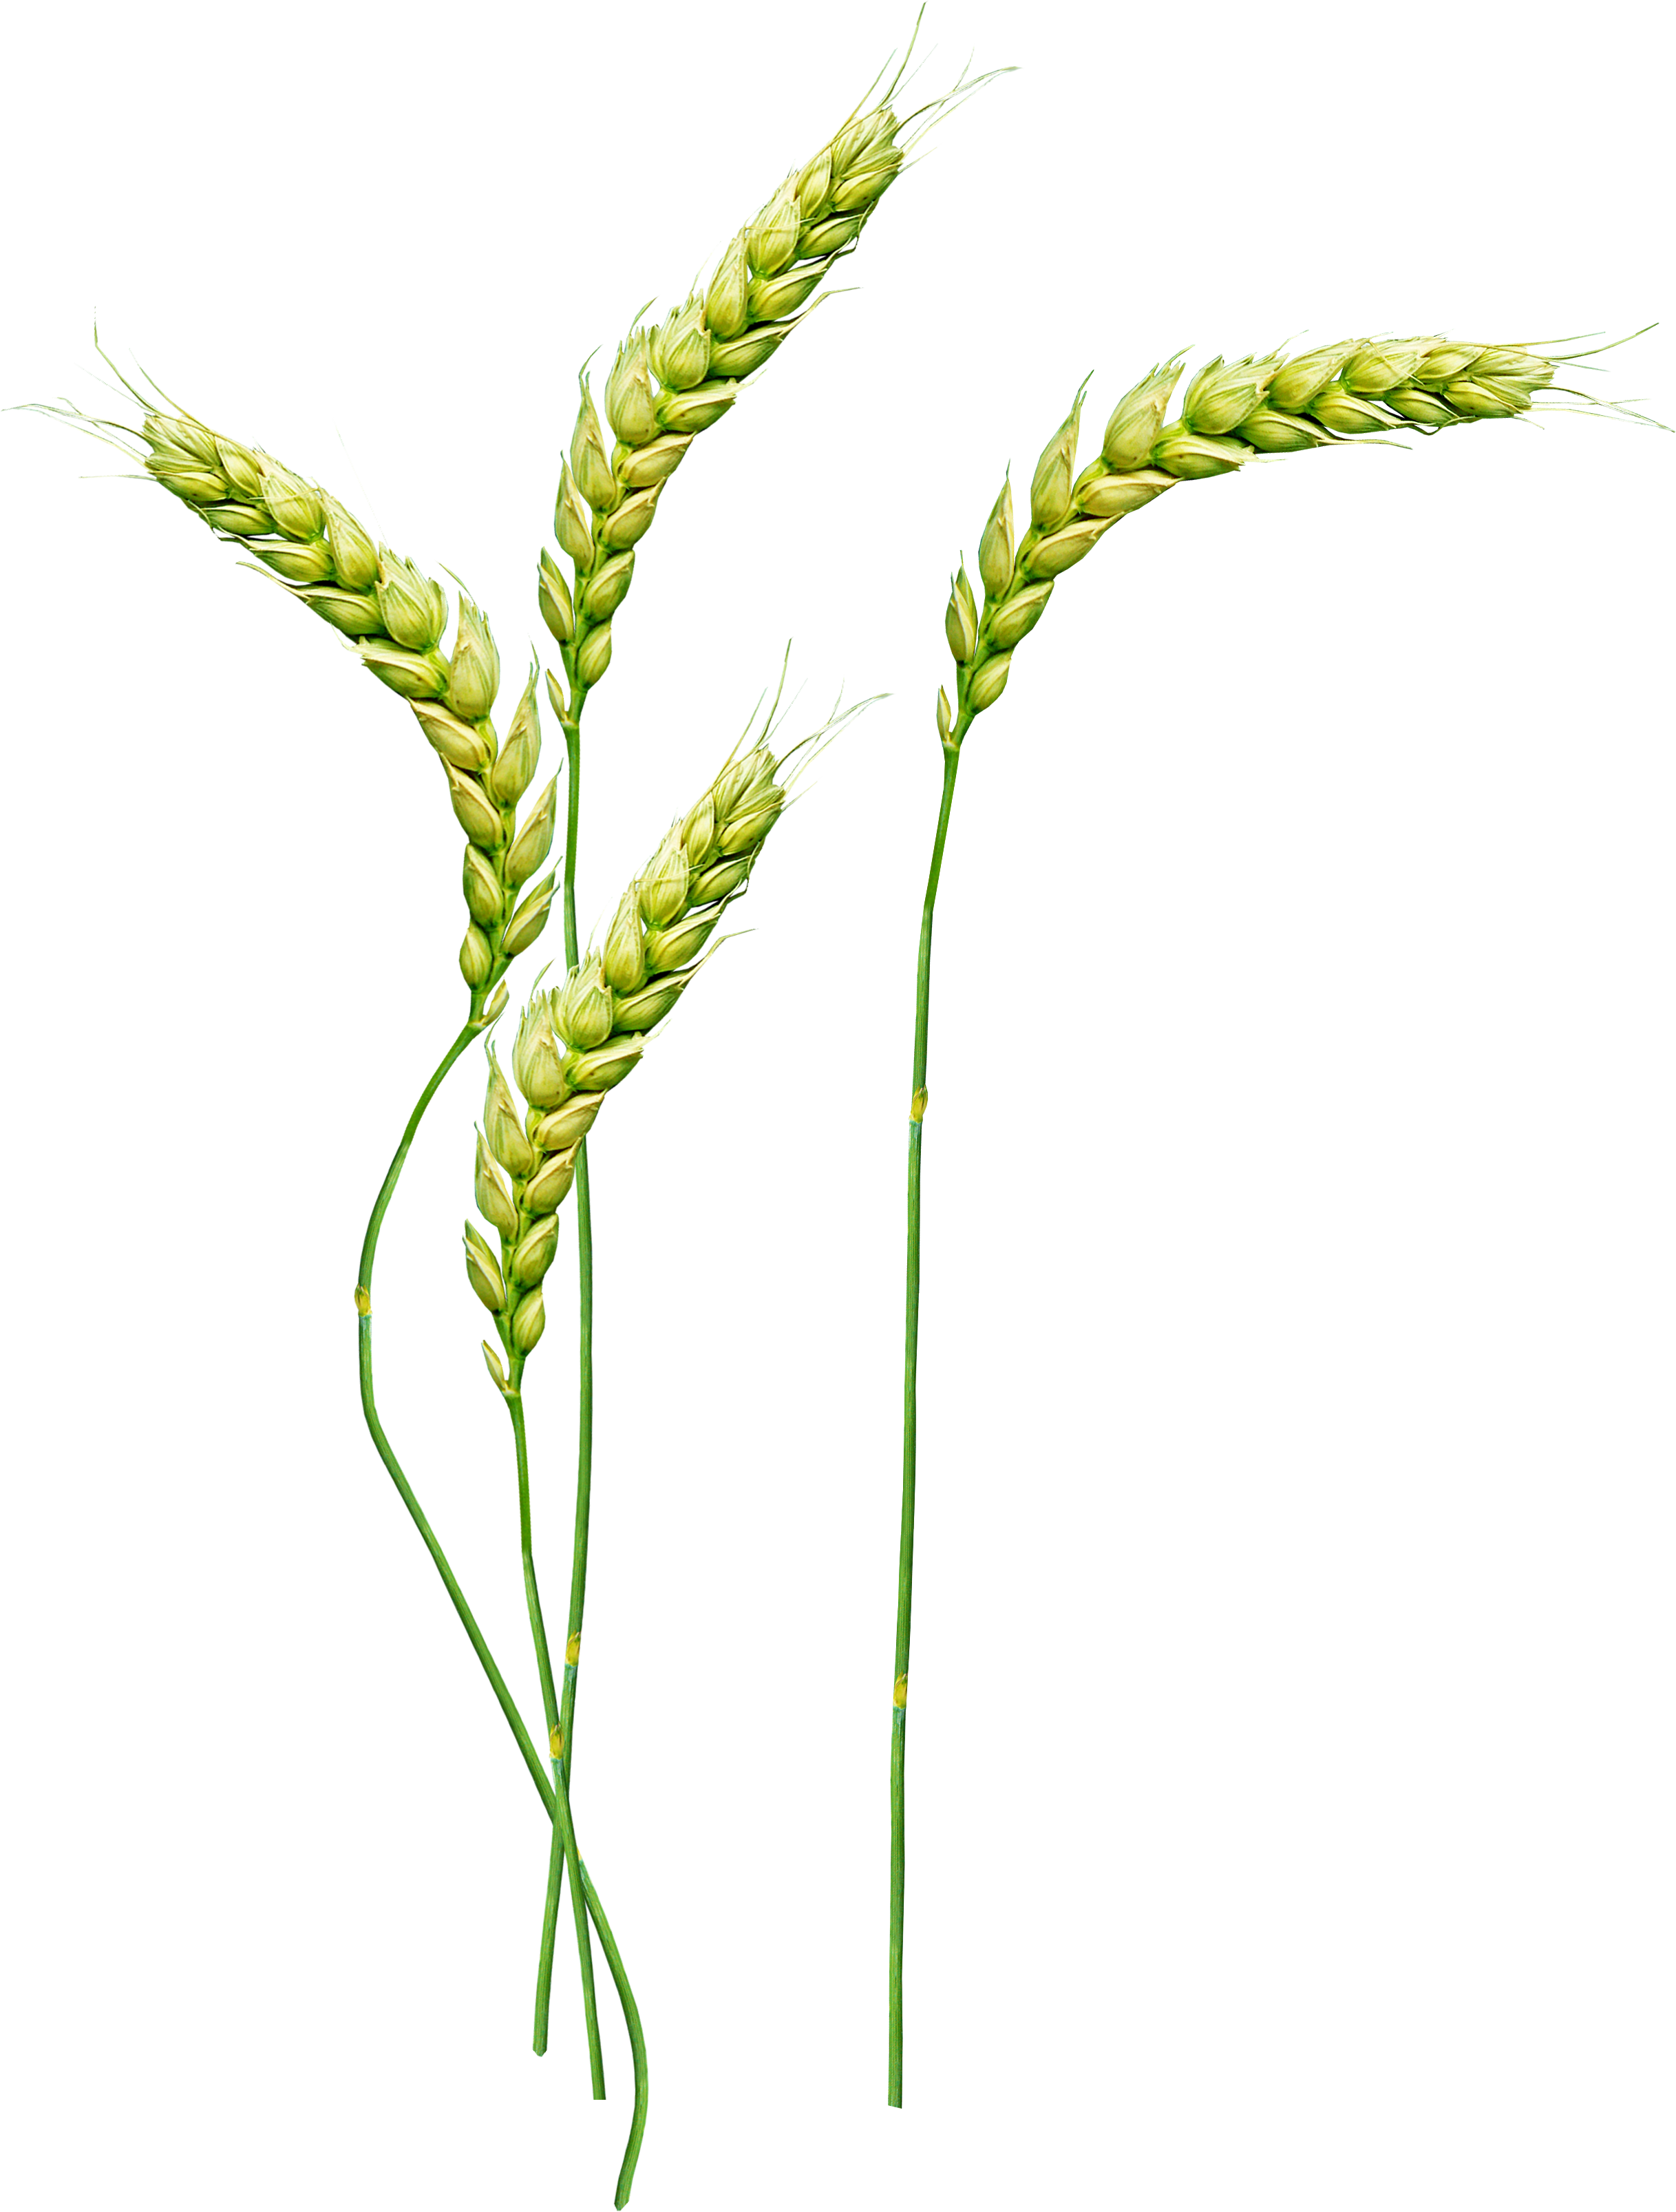 Png images free download. Wheat clipart wheat stem